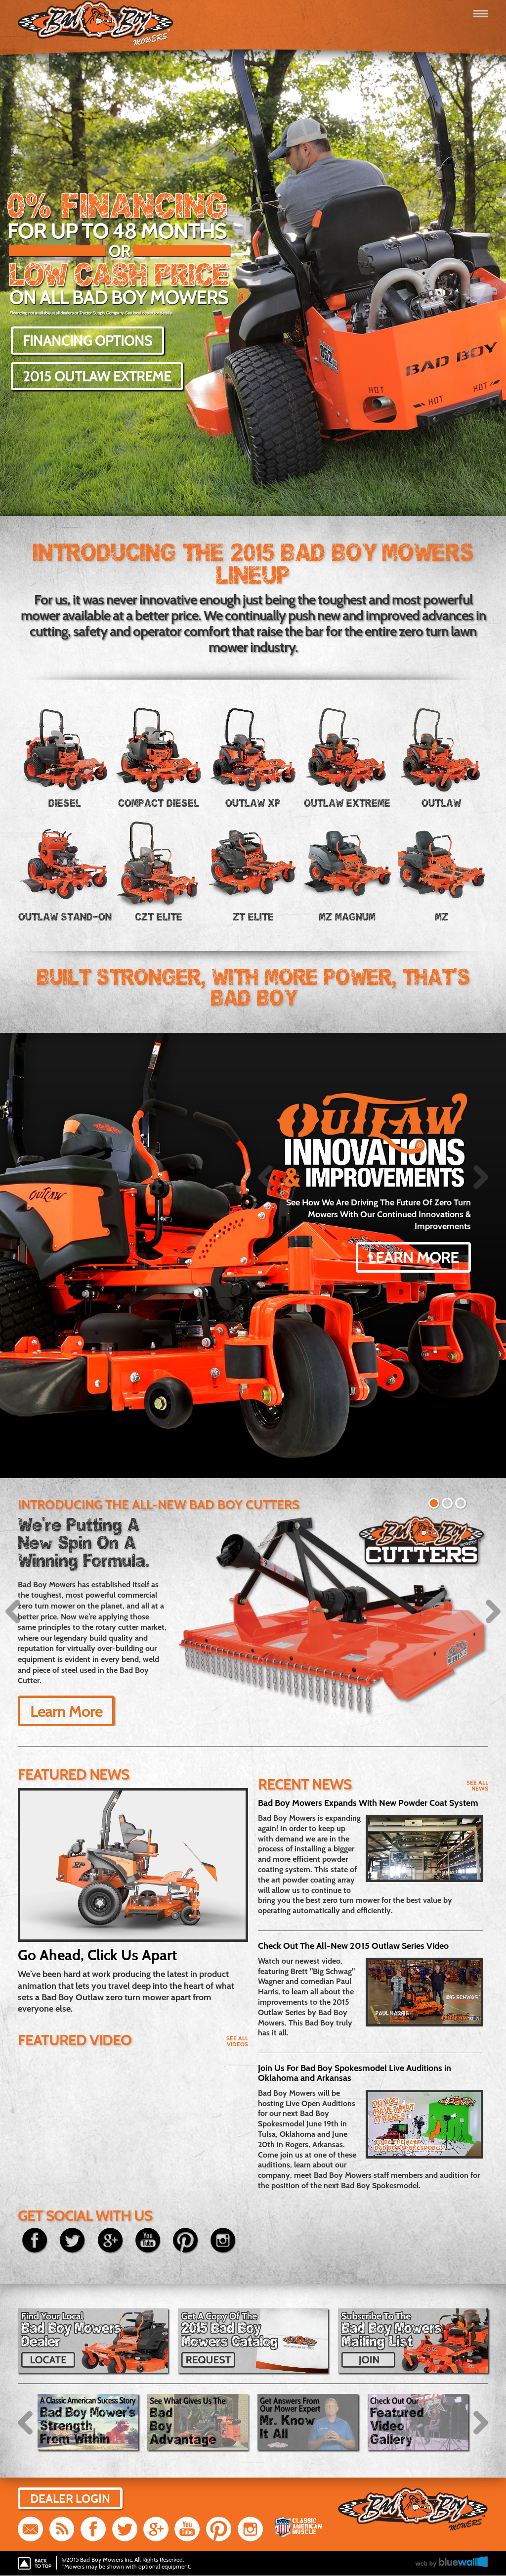 Bad Boy Mowers Competitors, Revenue and Employees - Owler